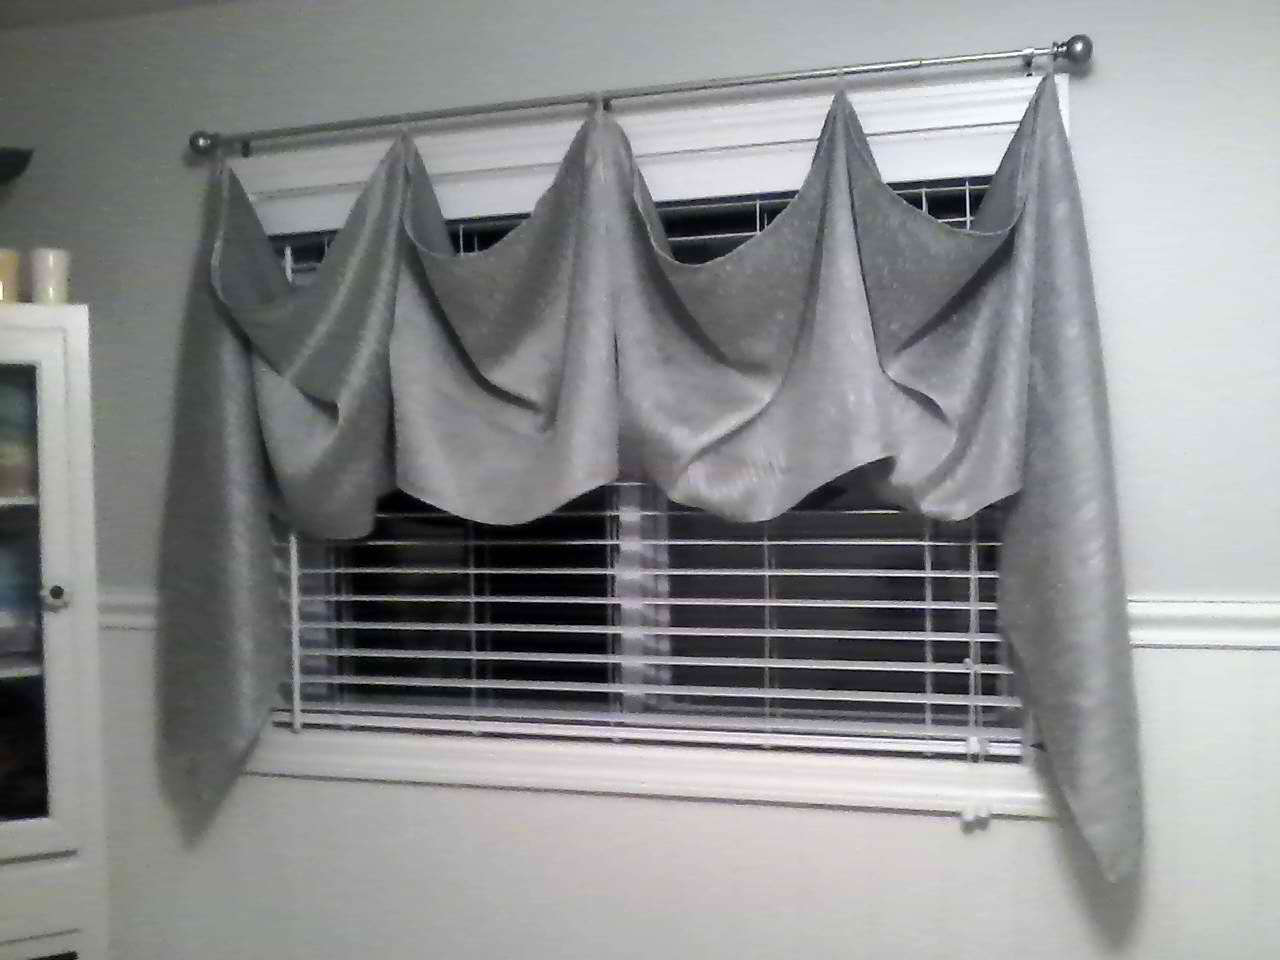 I Used One Panel Window Treatment That Found On Clearance Cut It Up The Middle Sewed Two Pieces Together At Short End